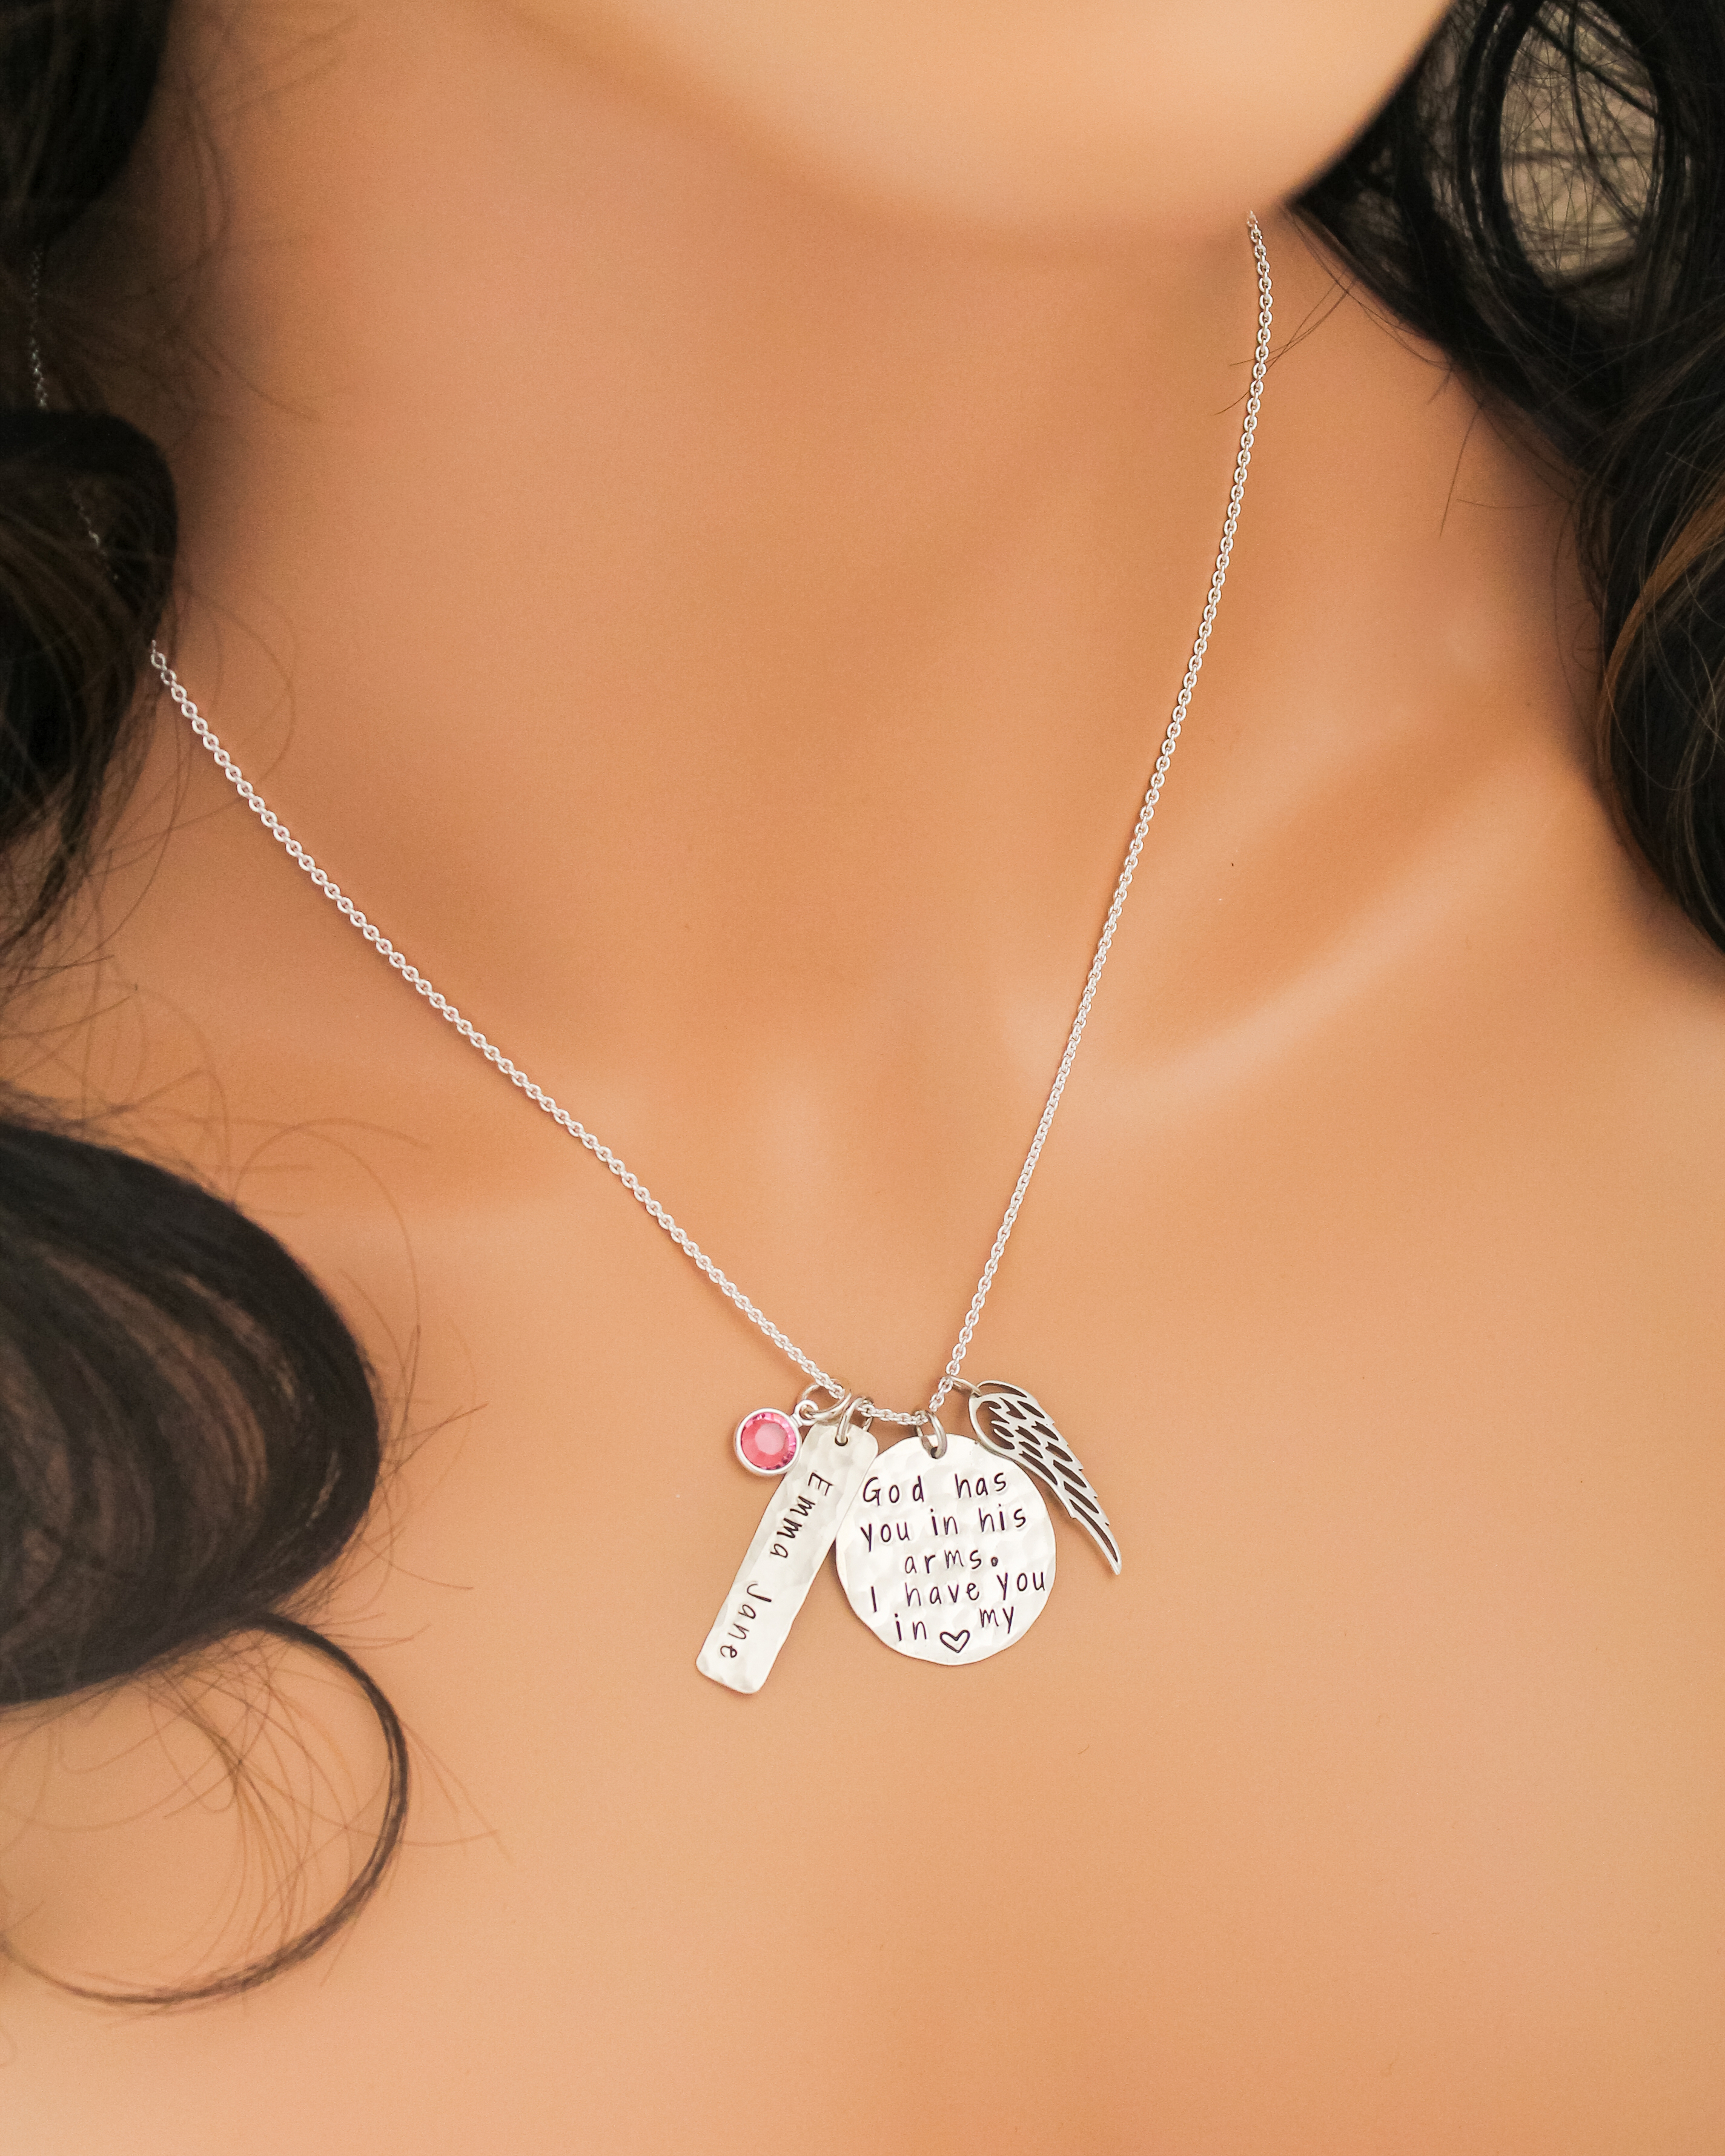 Heartfelt memorial baby necklace personalized with name and angel wing.